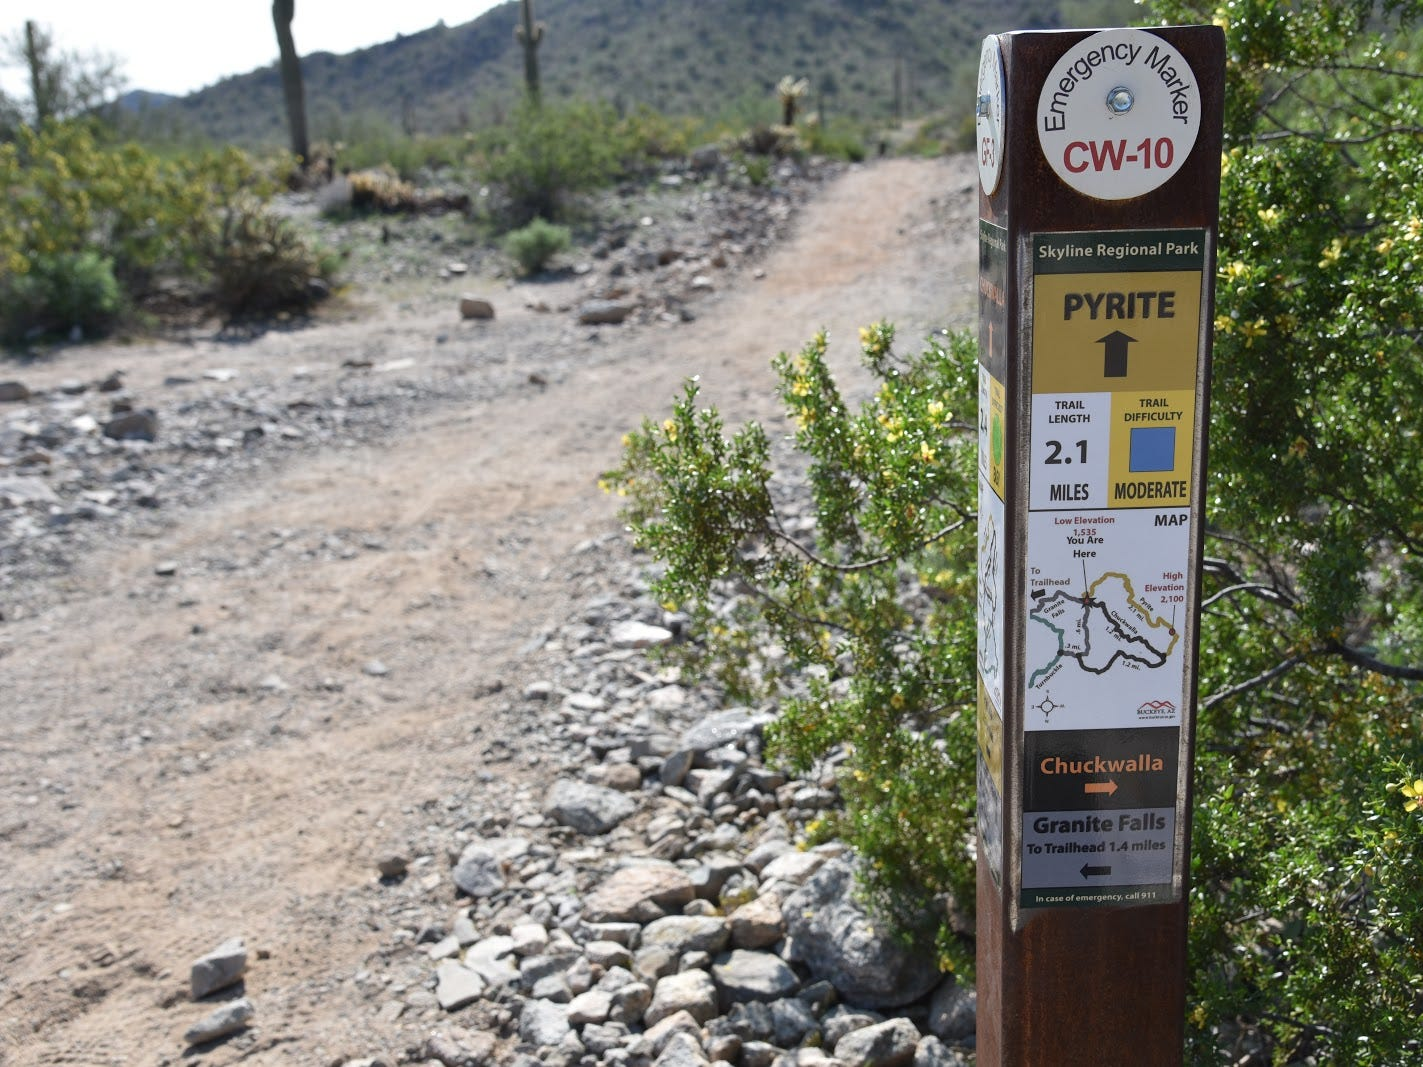 Pyrite Trail spins off busier park trails.